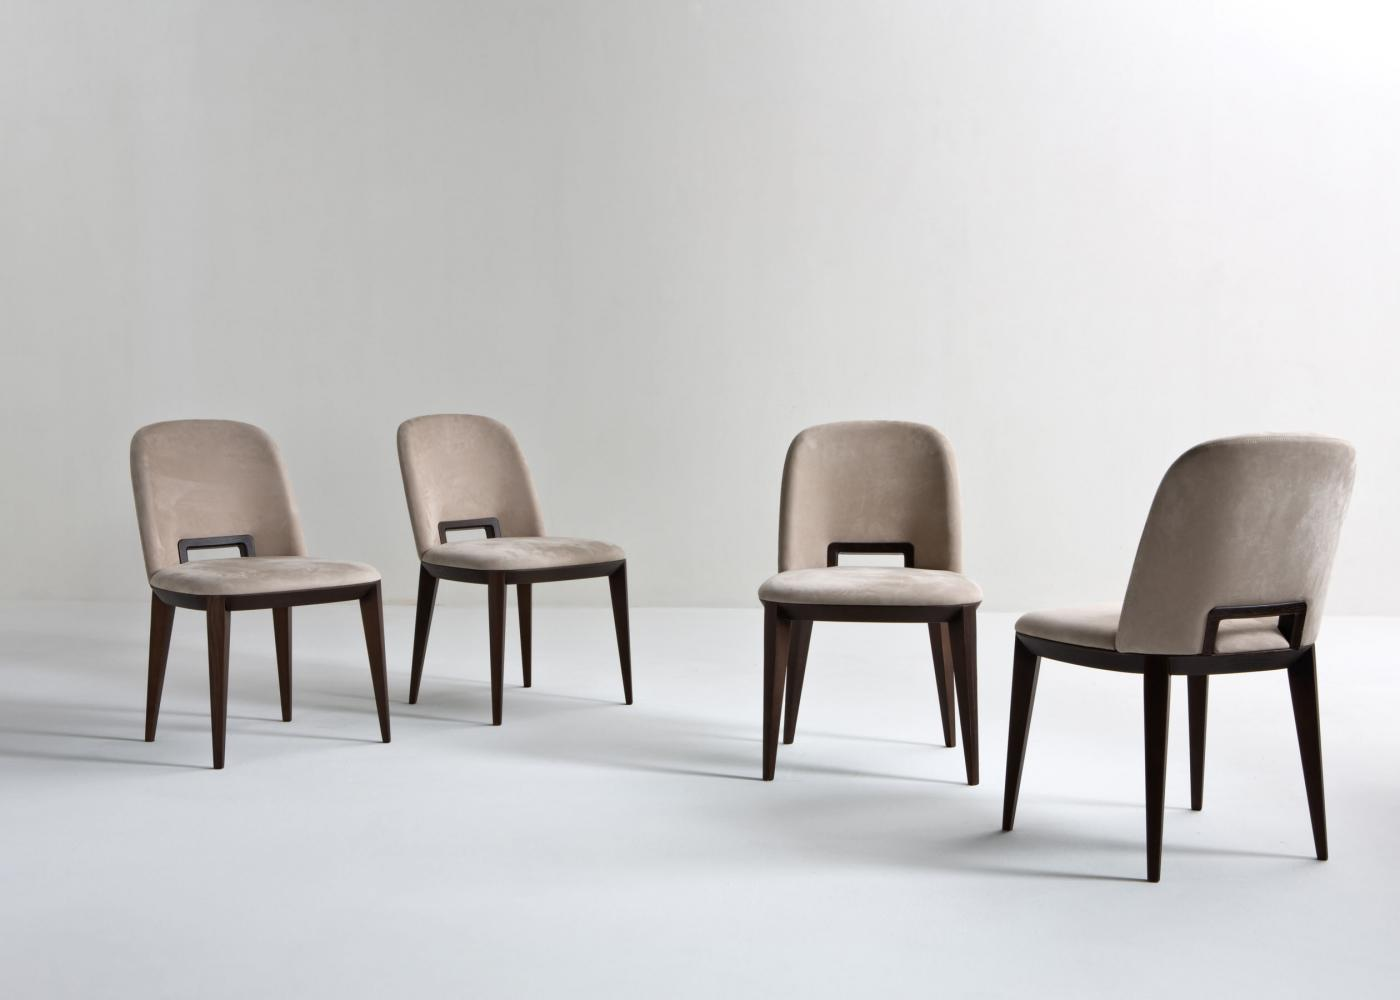 Modern chair in leather velvet or fabric with wooden handle